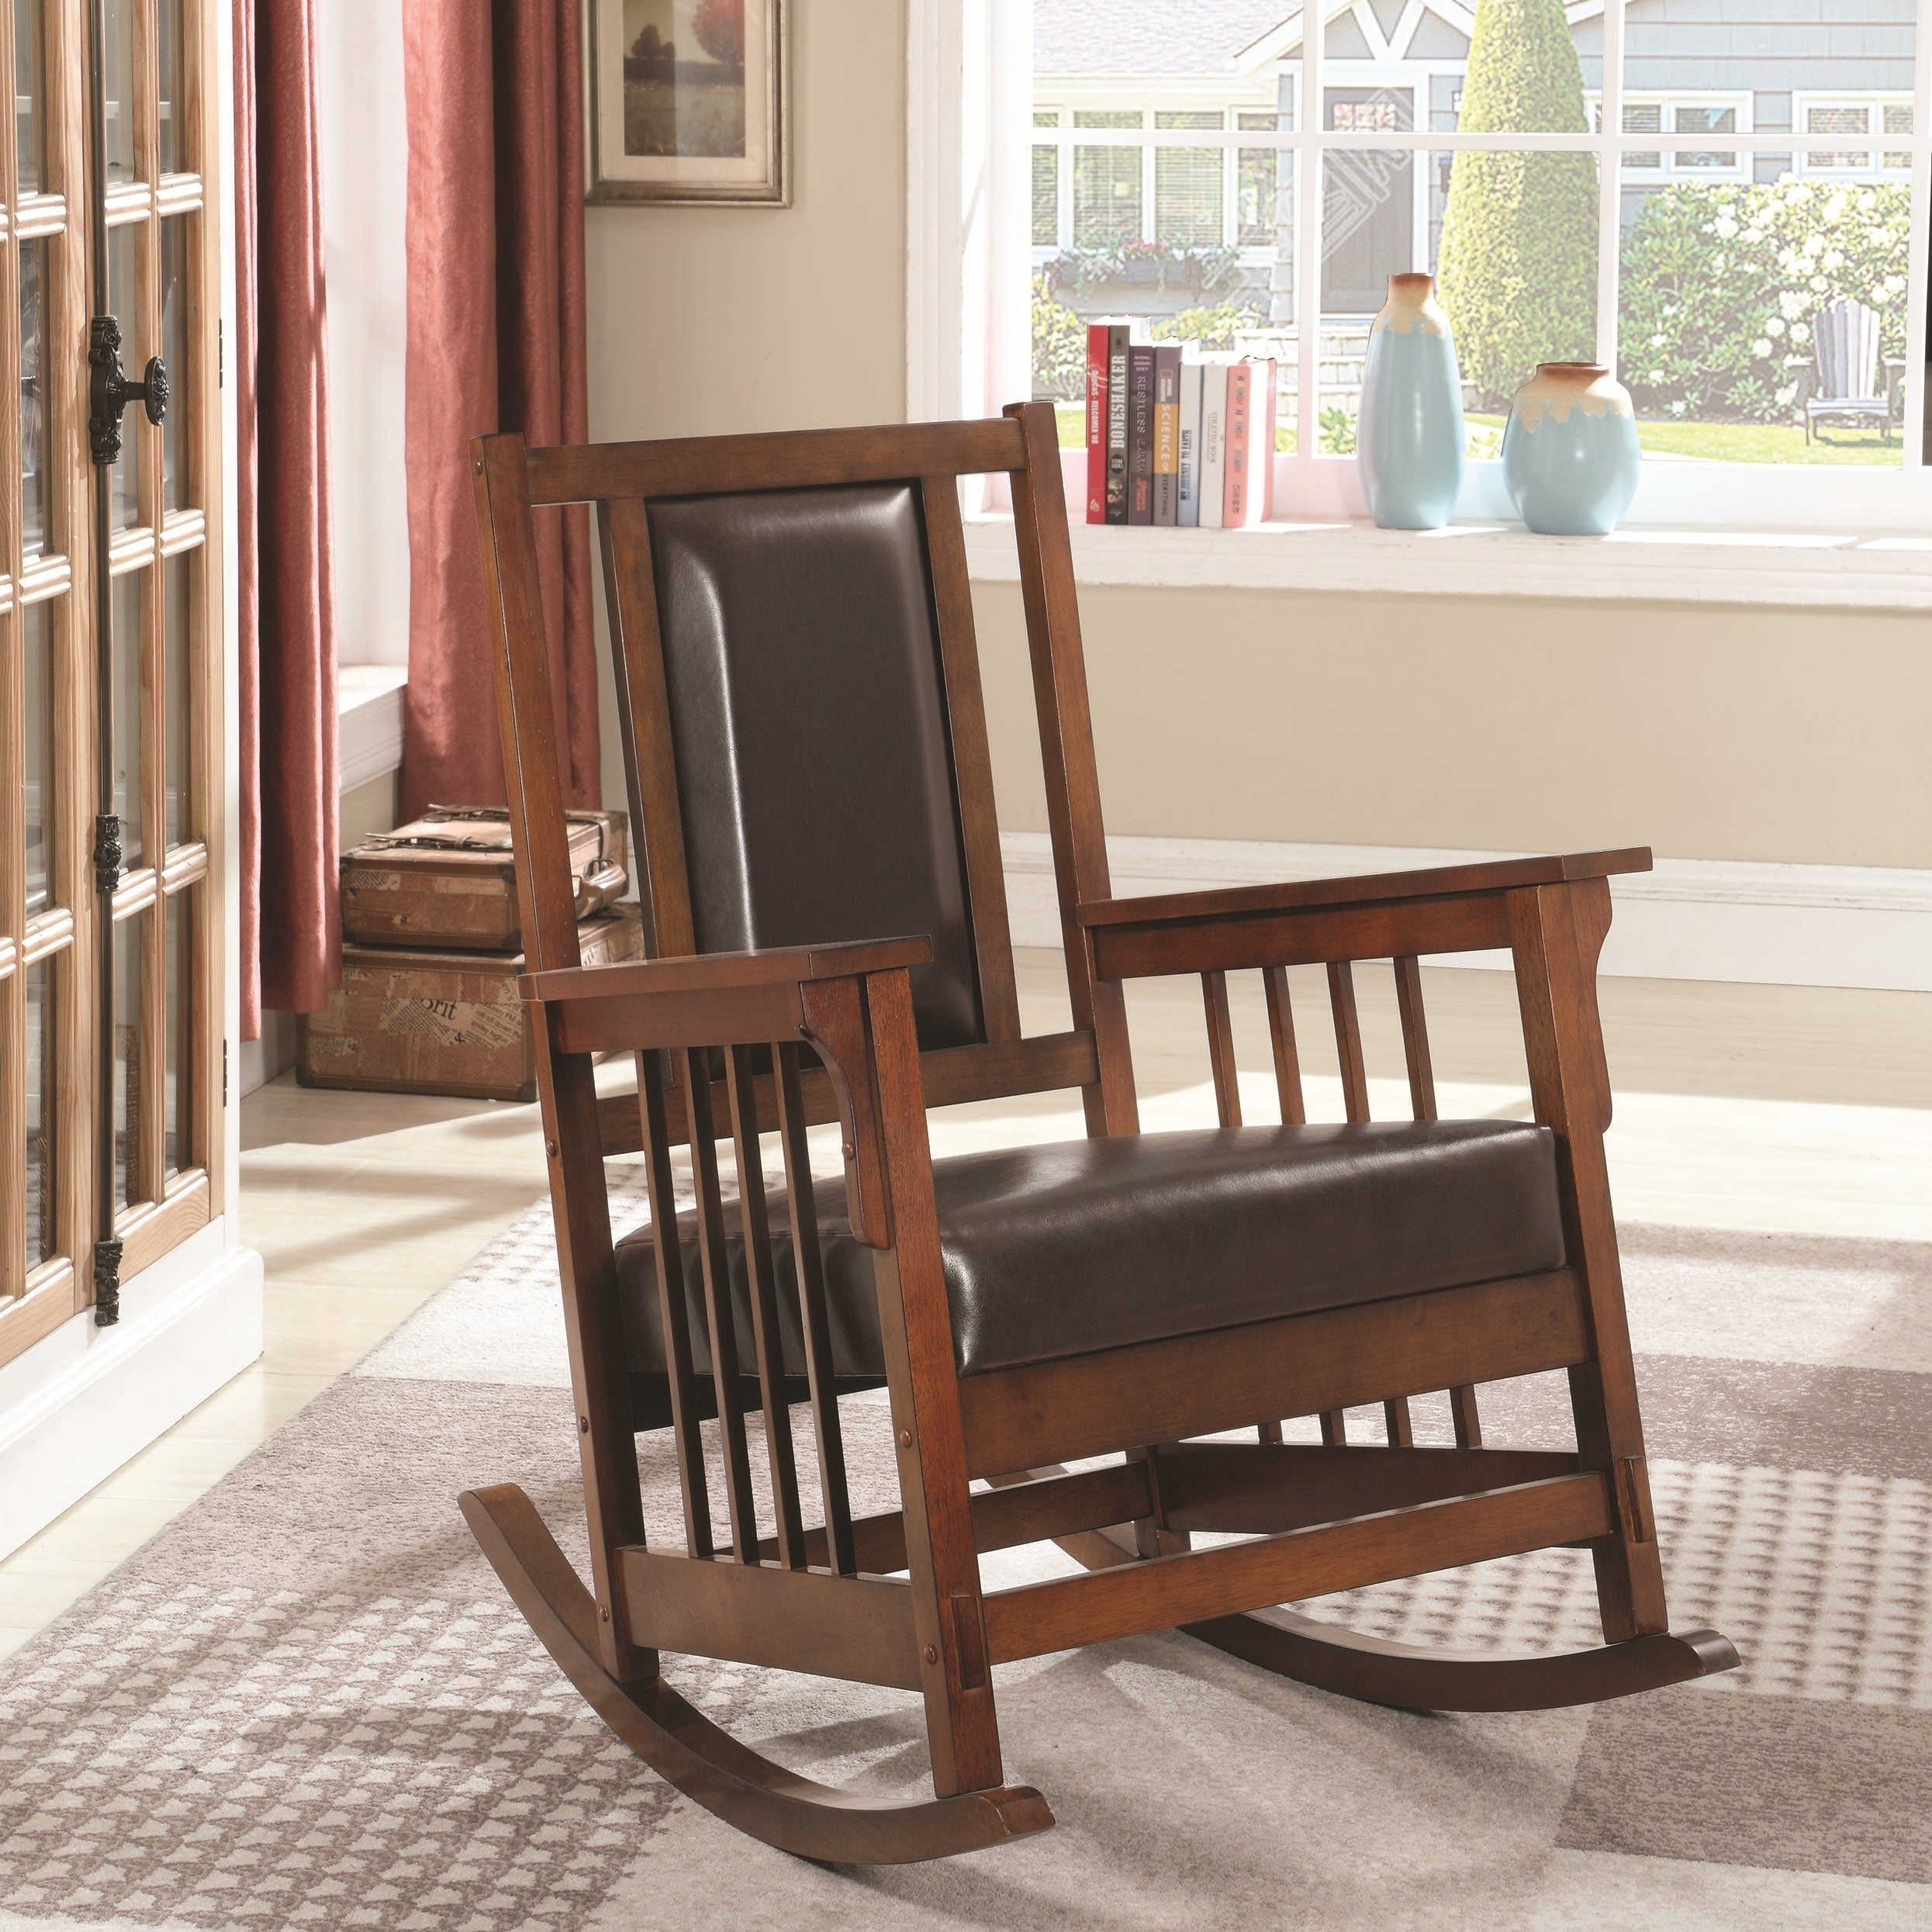 Inspiration about Mission Design Wood Rocking Chair With Brown Leather Seat Within Mission Design Wood Rocking Chairs With Brown Leather Seat (#1 of 20)